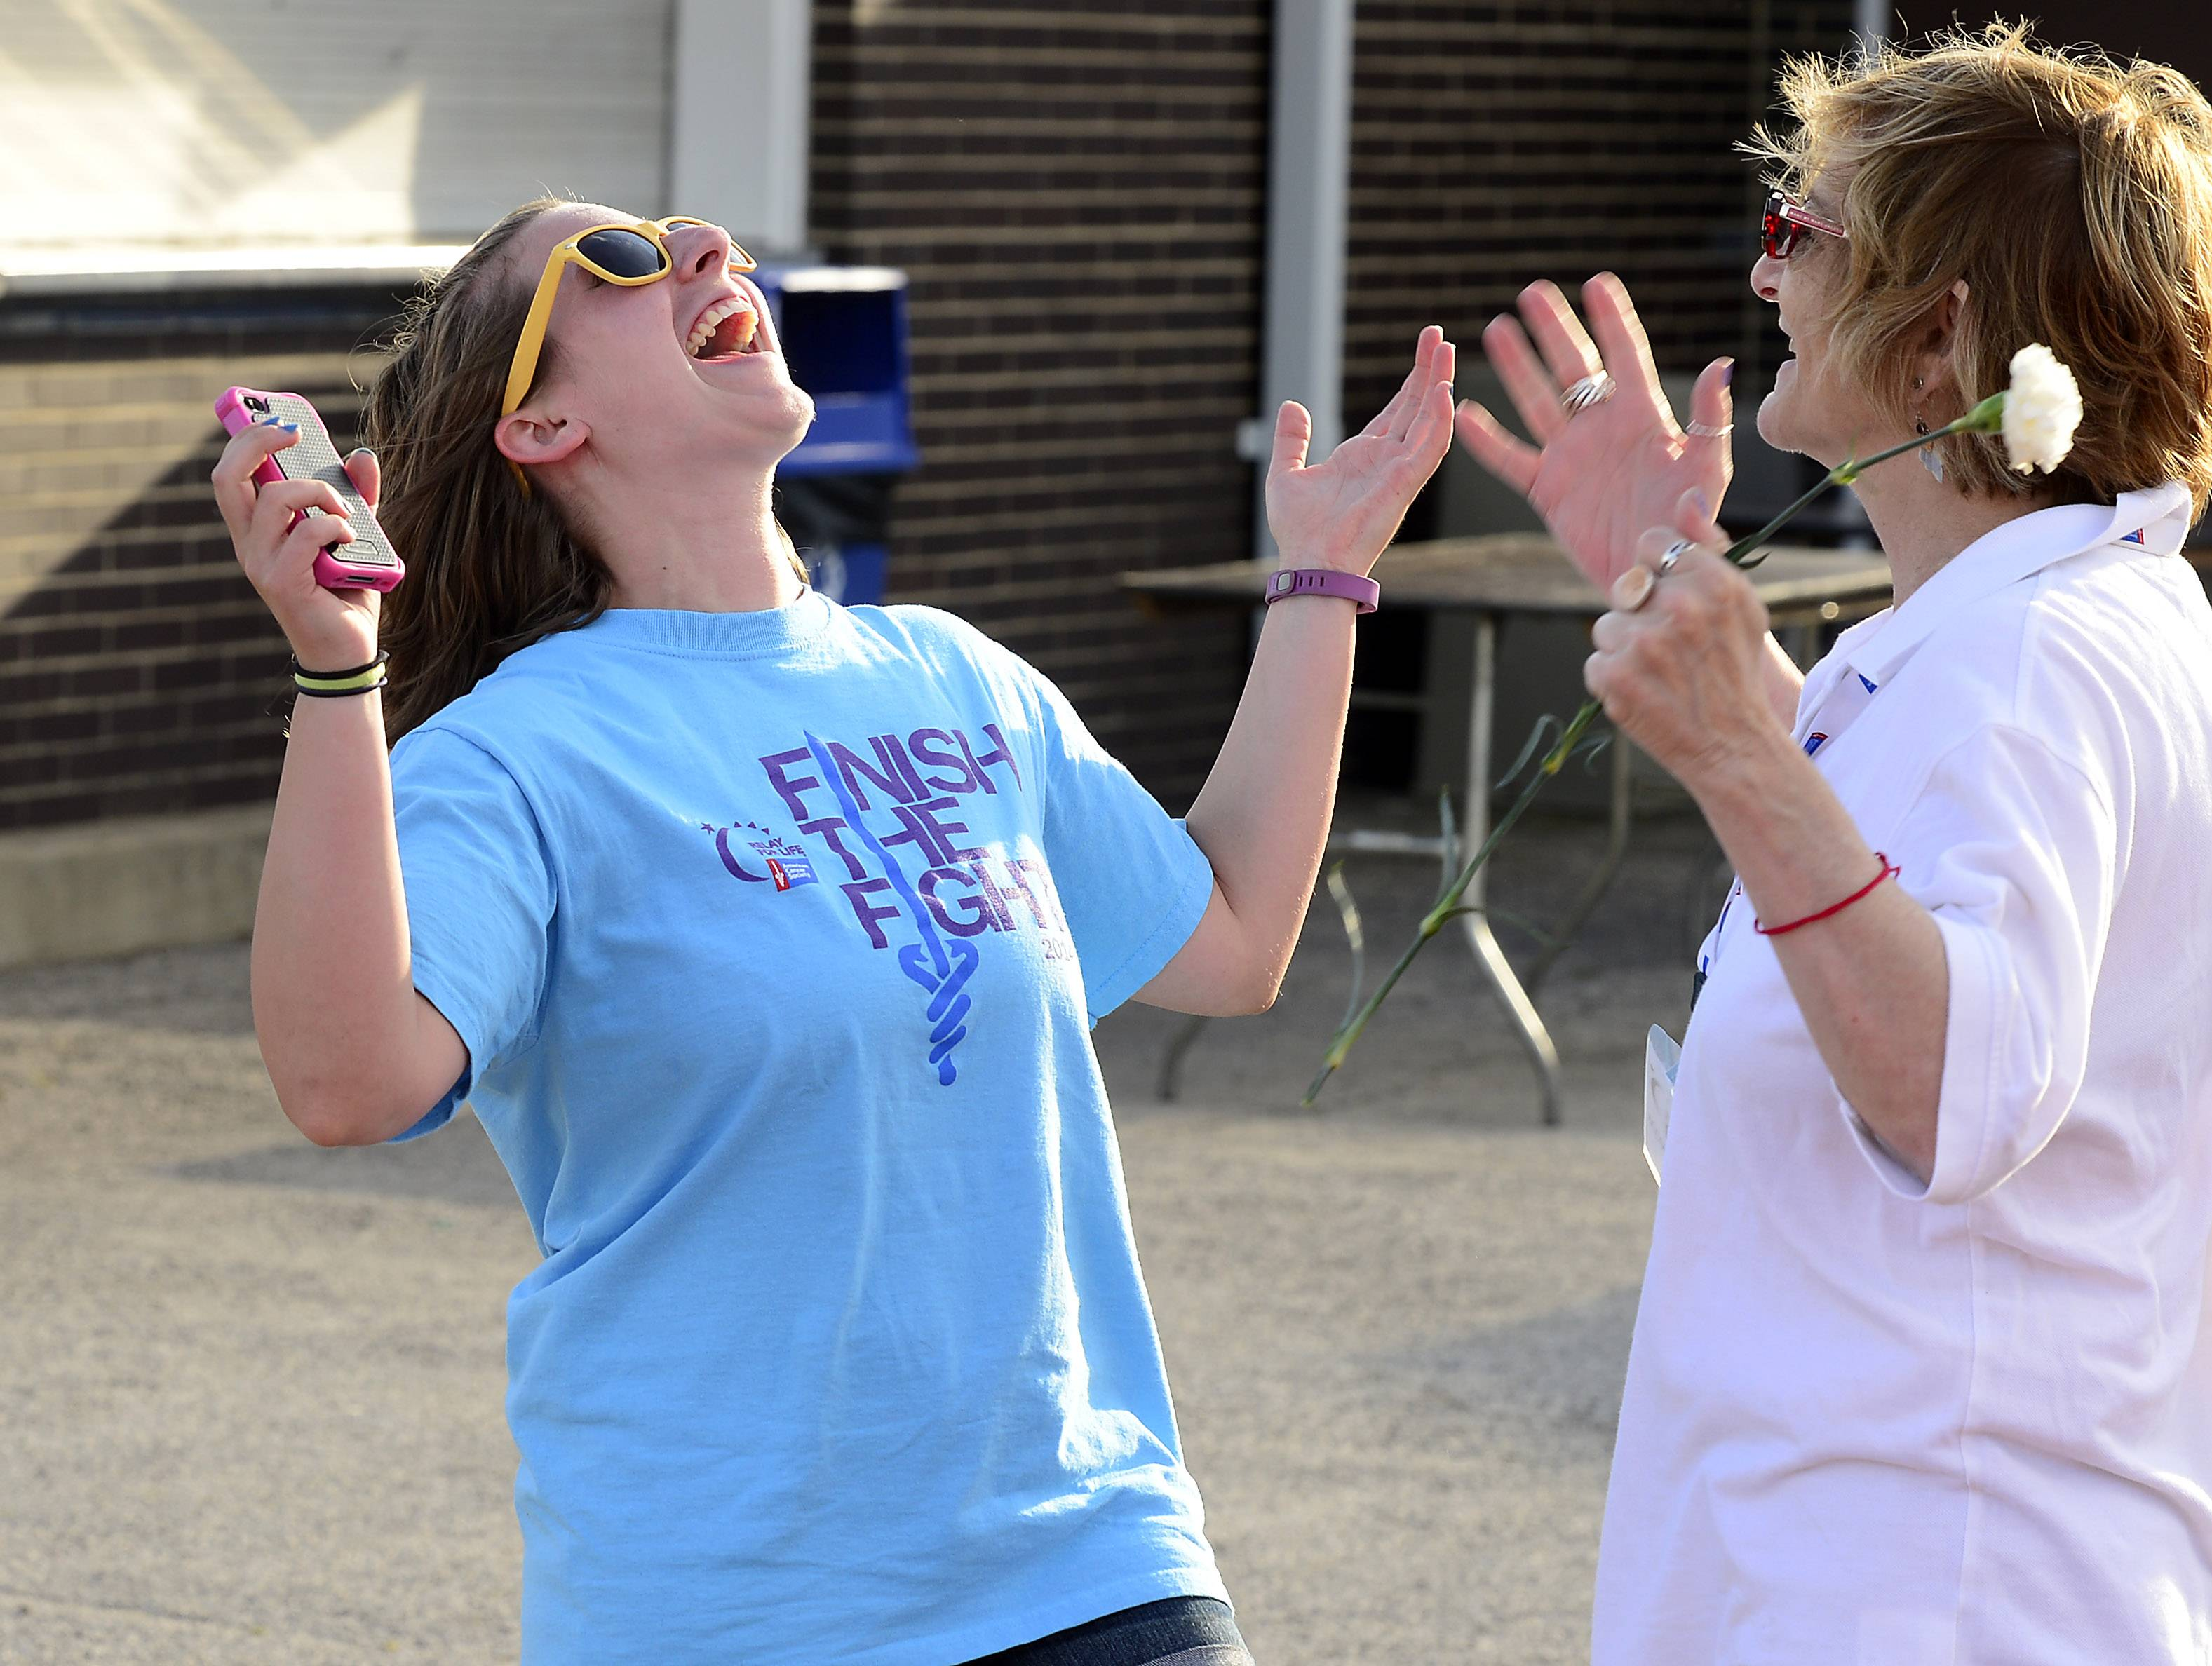 Volunteer Becca Urban, 24, left, Susan Grossman from the American Cancer Society, both of Arlington Heights, share a laugh at the annual Relay For Life Friday at John Hersey High School.